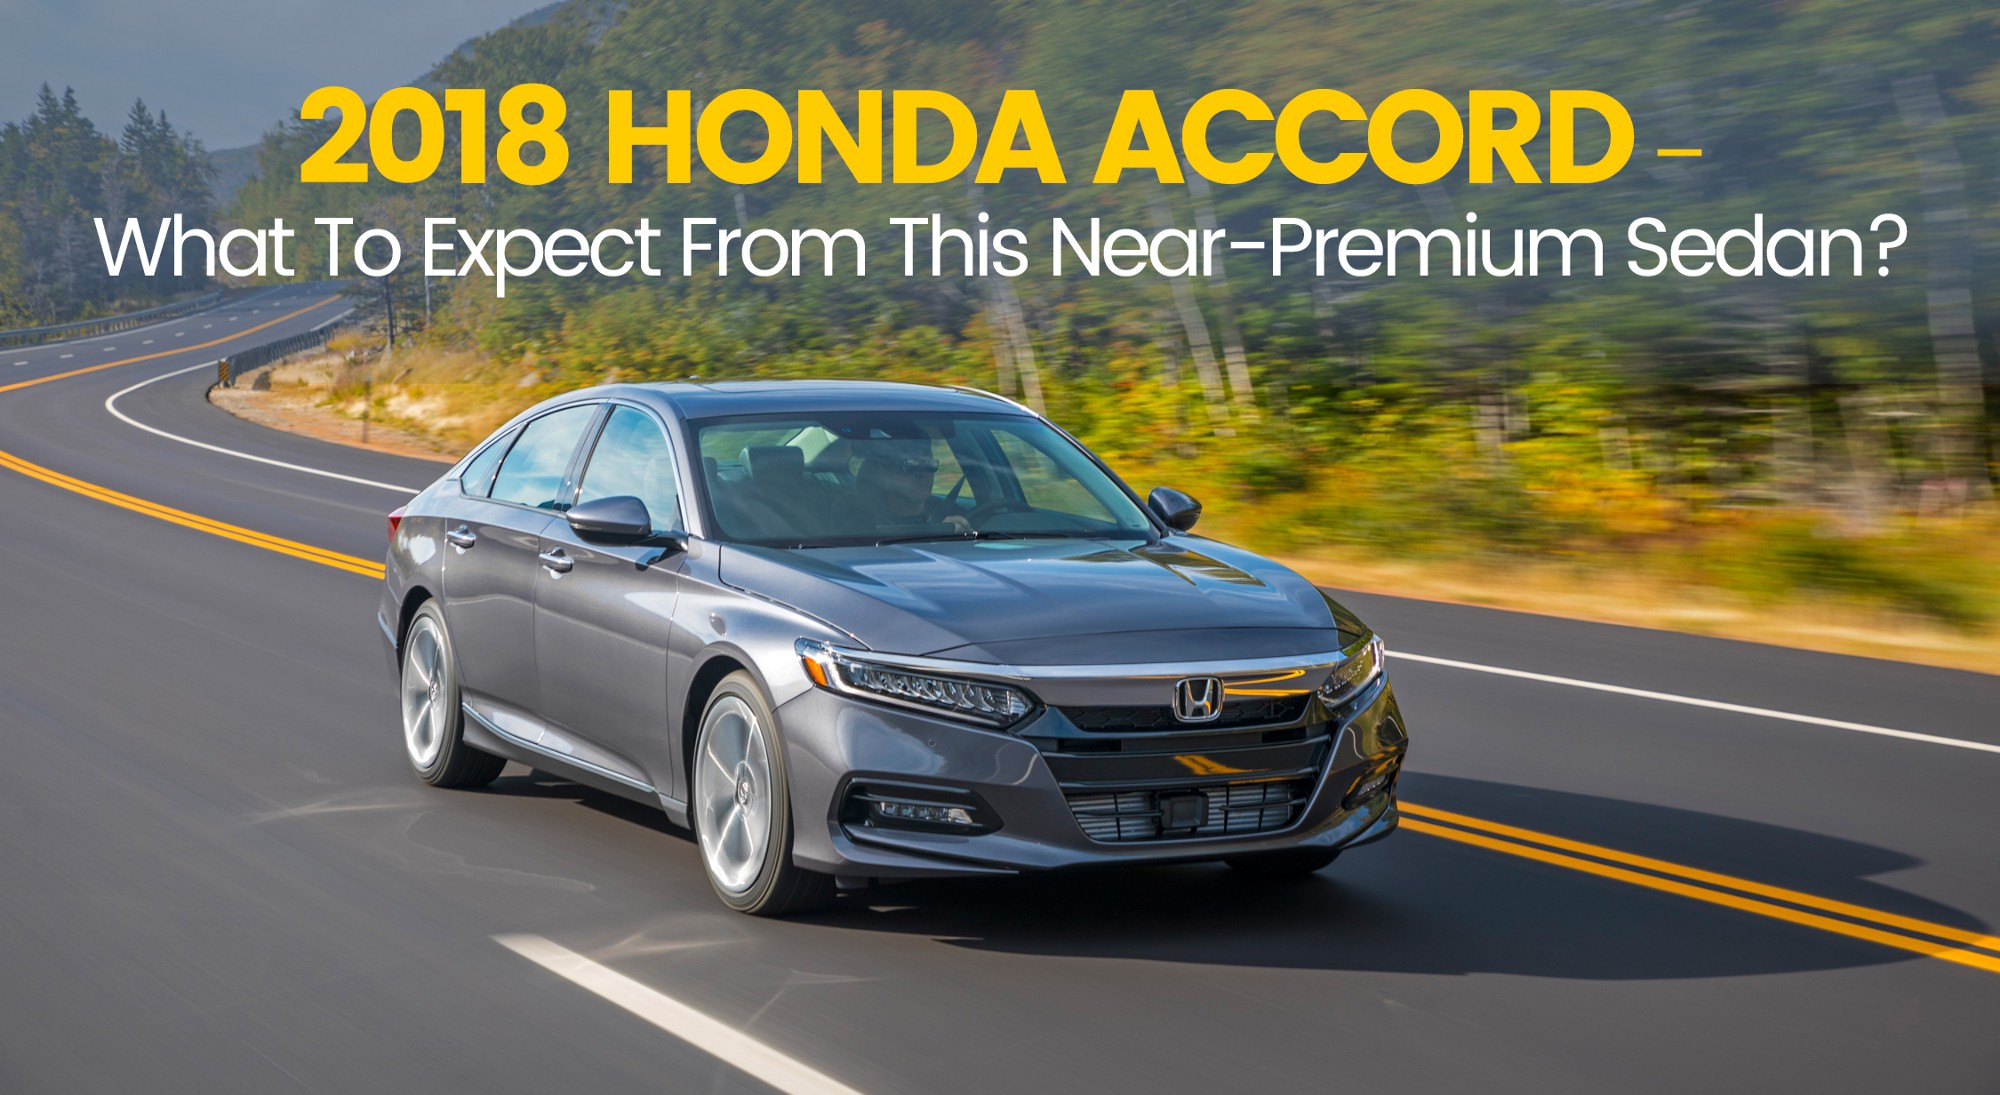 The 2018 Honda Accord is All Set to Take Over The Midsize Sedan Segment